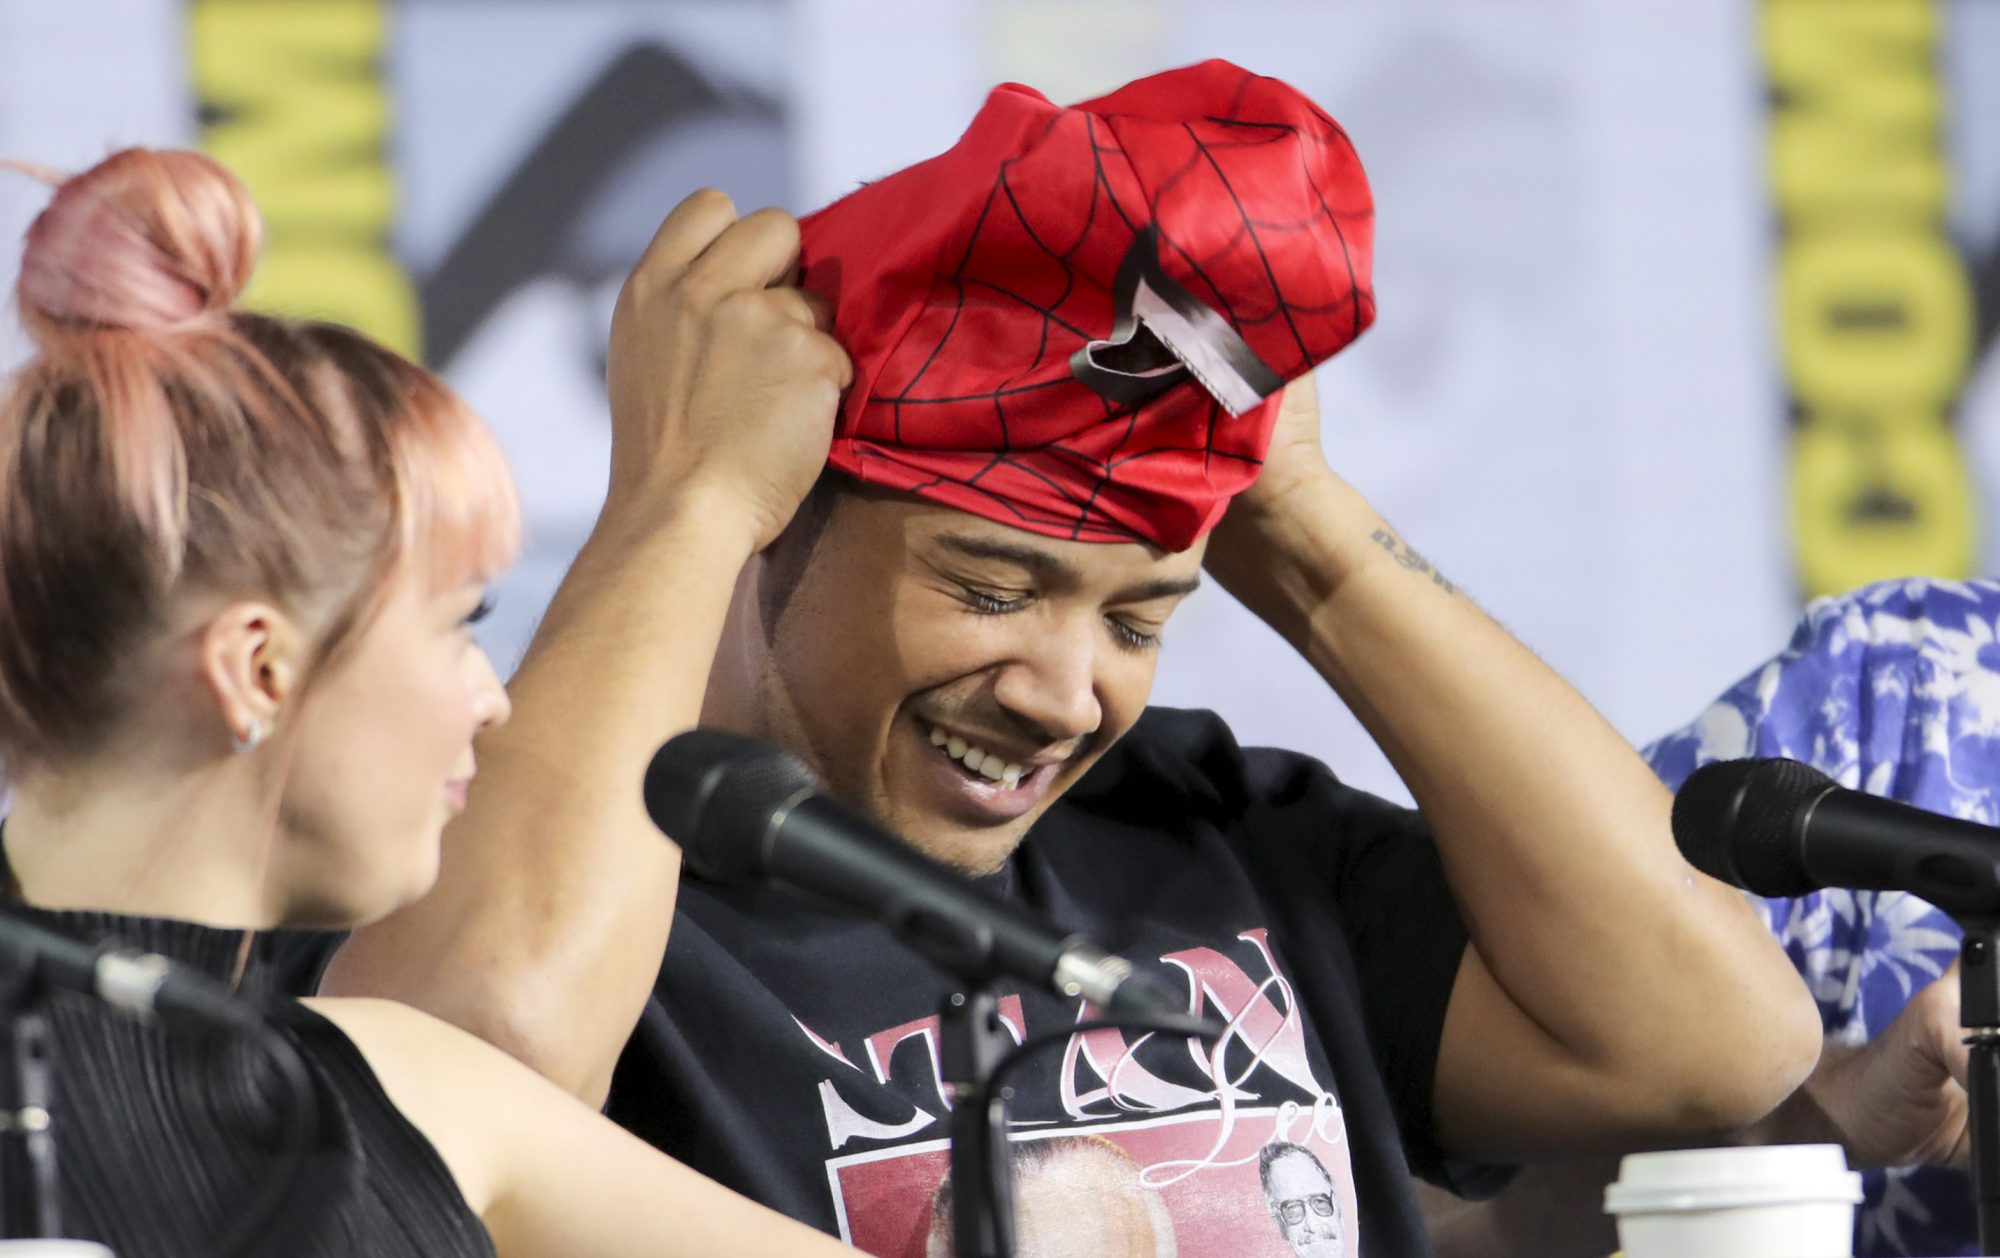 Mandatory Credit: Photo by Chelsea Lauren/Variety/Shutterstock (10341166al) Maisie Williams and Jacob Anderson 'Game of Thrones' TV show panel, Comic-Con International, San Diego, USA - 19 Jul 2019